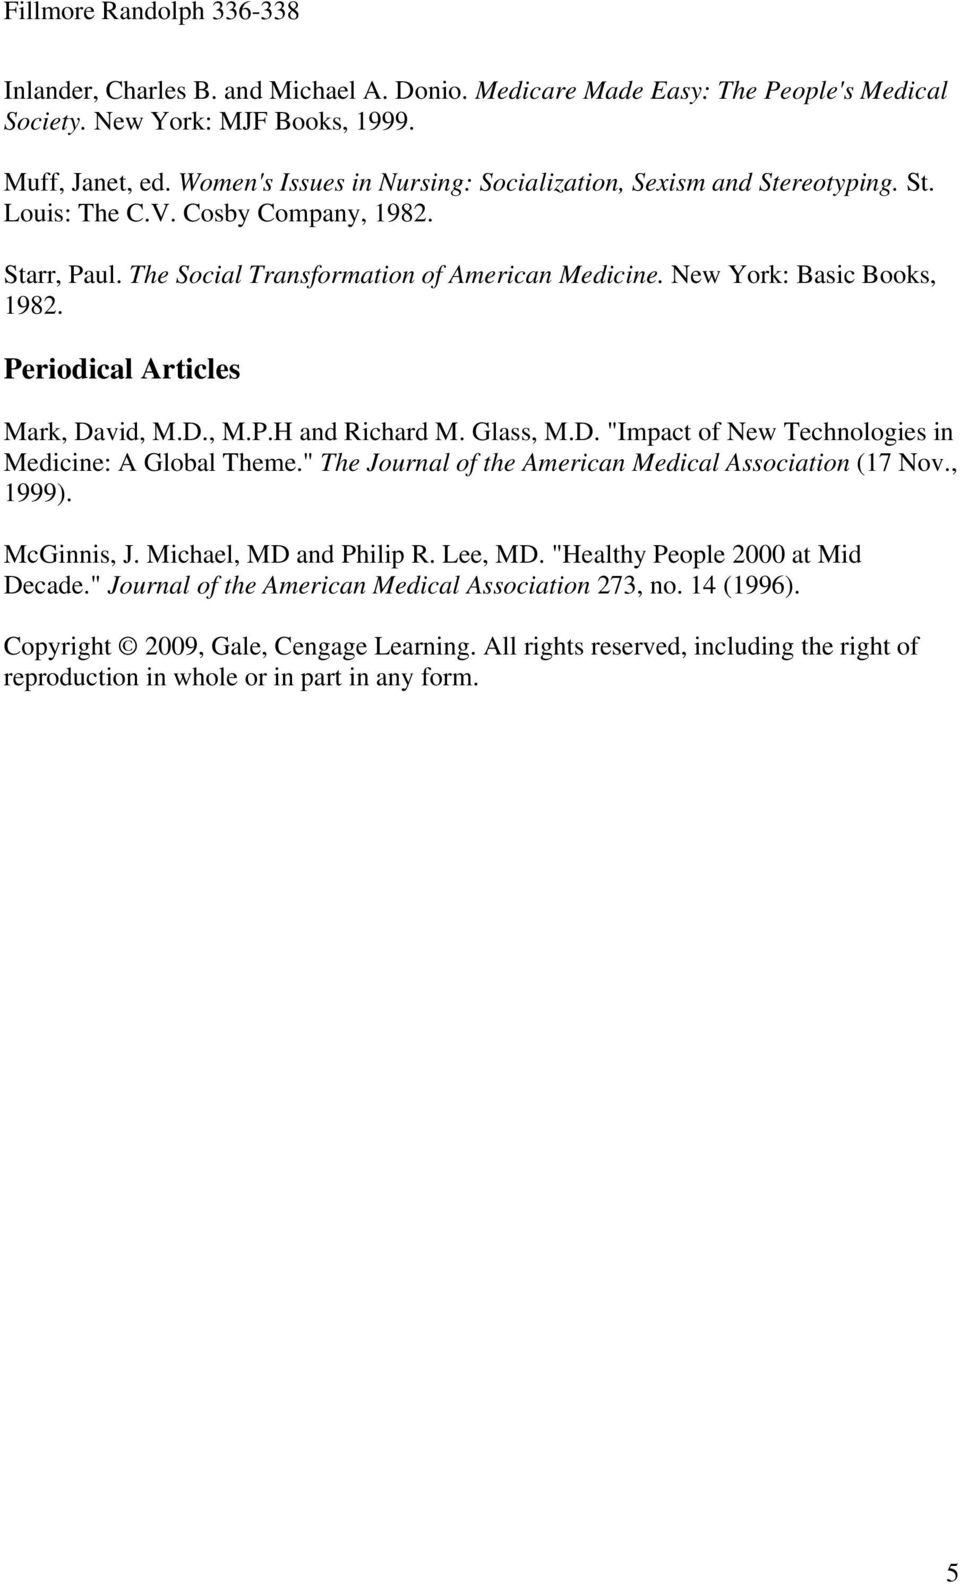 "Periodical Articles Mark, David, M.D., M.P.H and Richard M. Glass, M.D. ""Impact of New Technologies in Medicine: A Global Theme."" The Journal of the American Medical Association (17 Nov., 1999)."